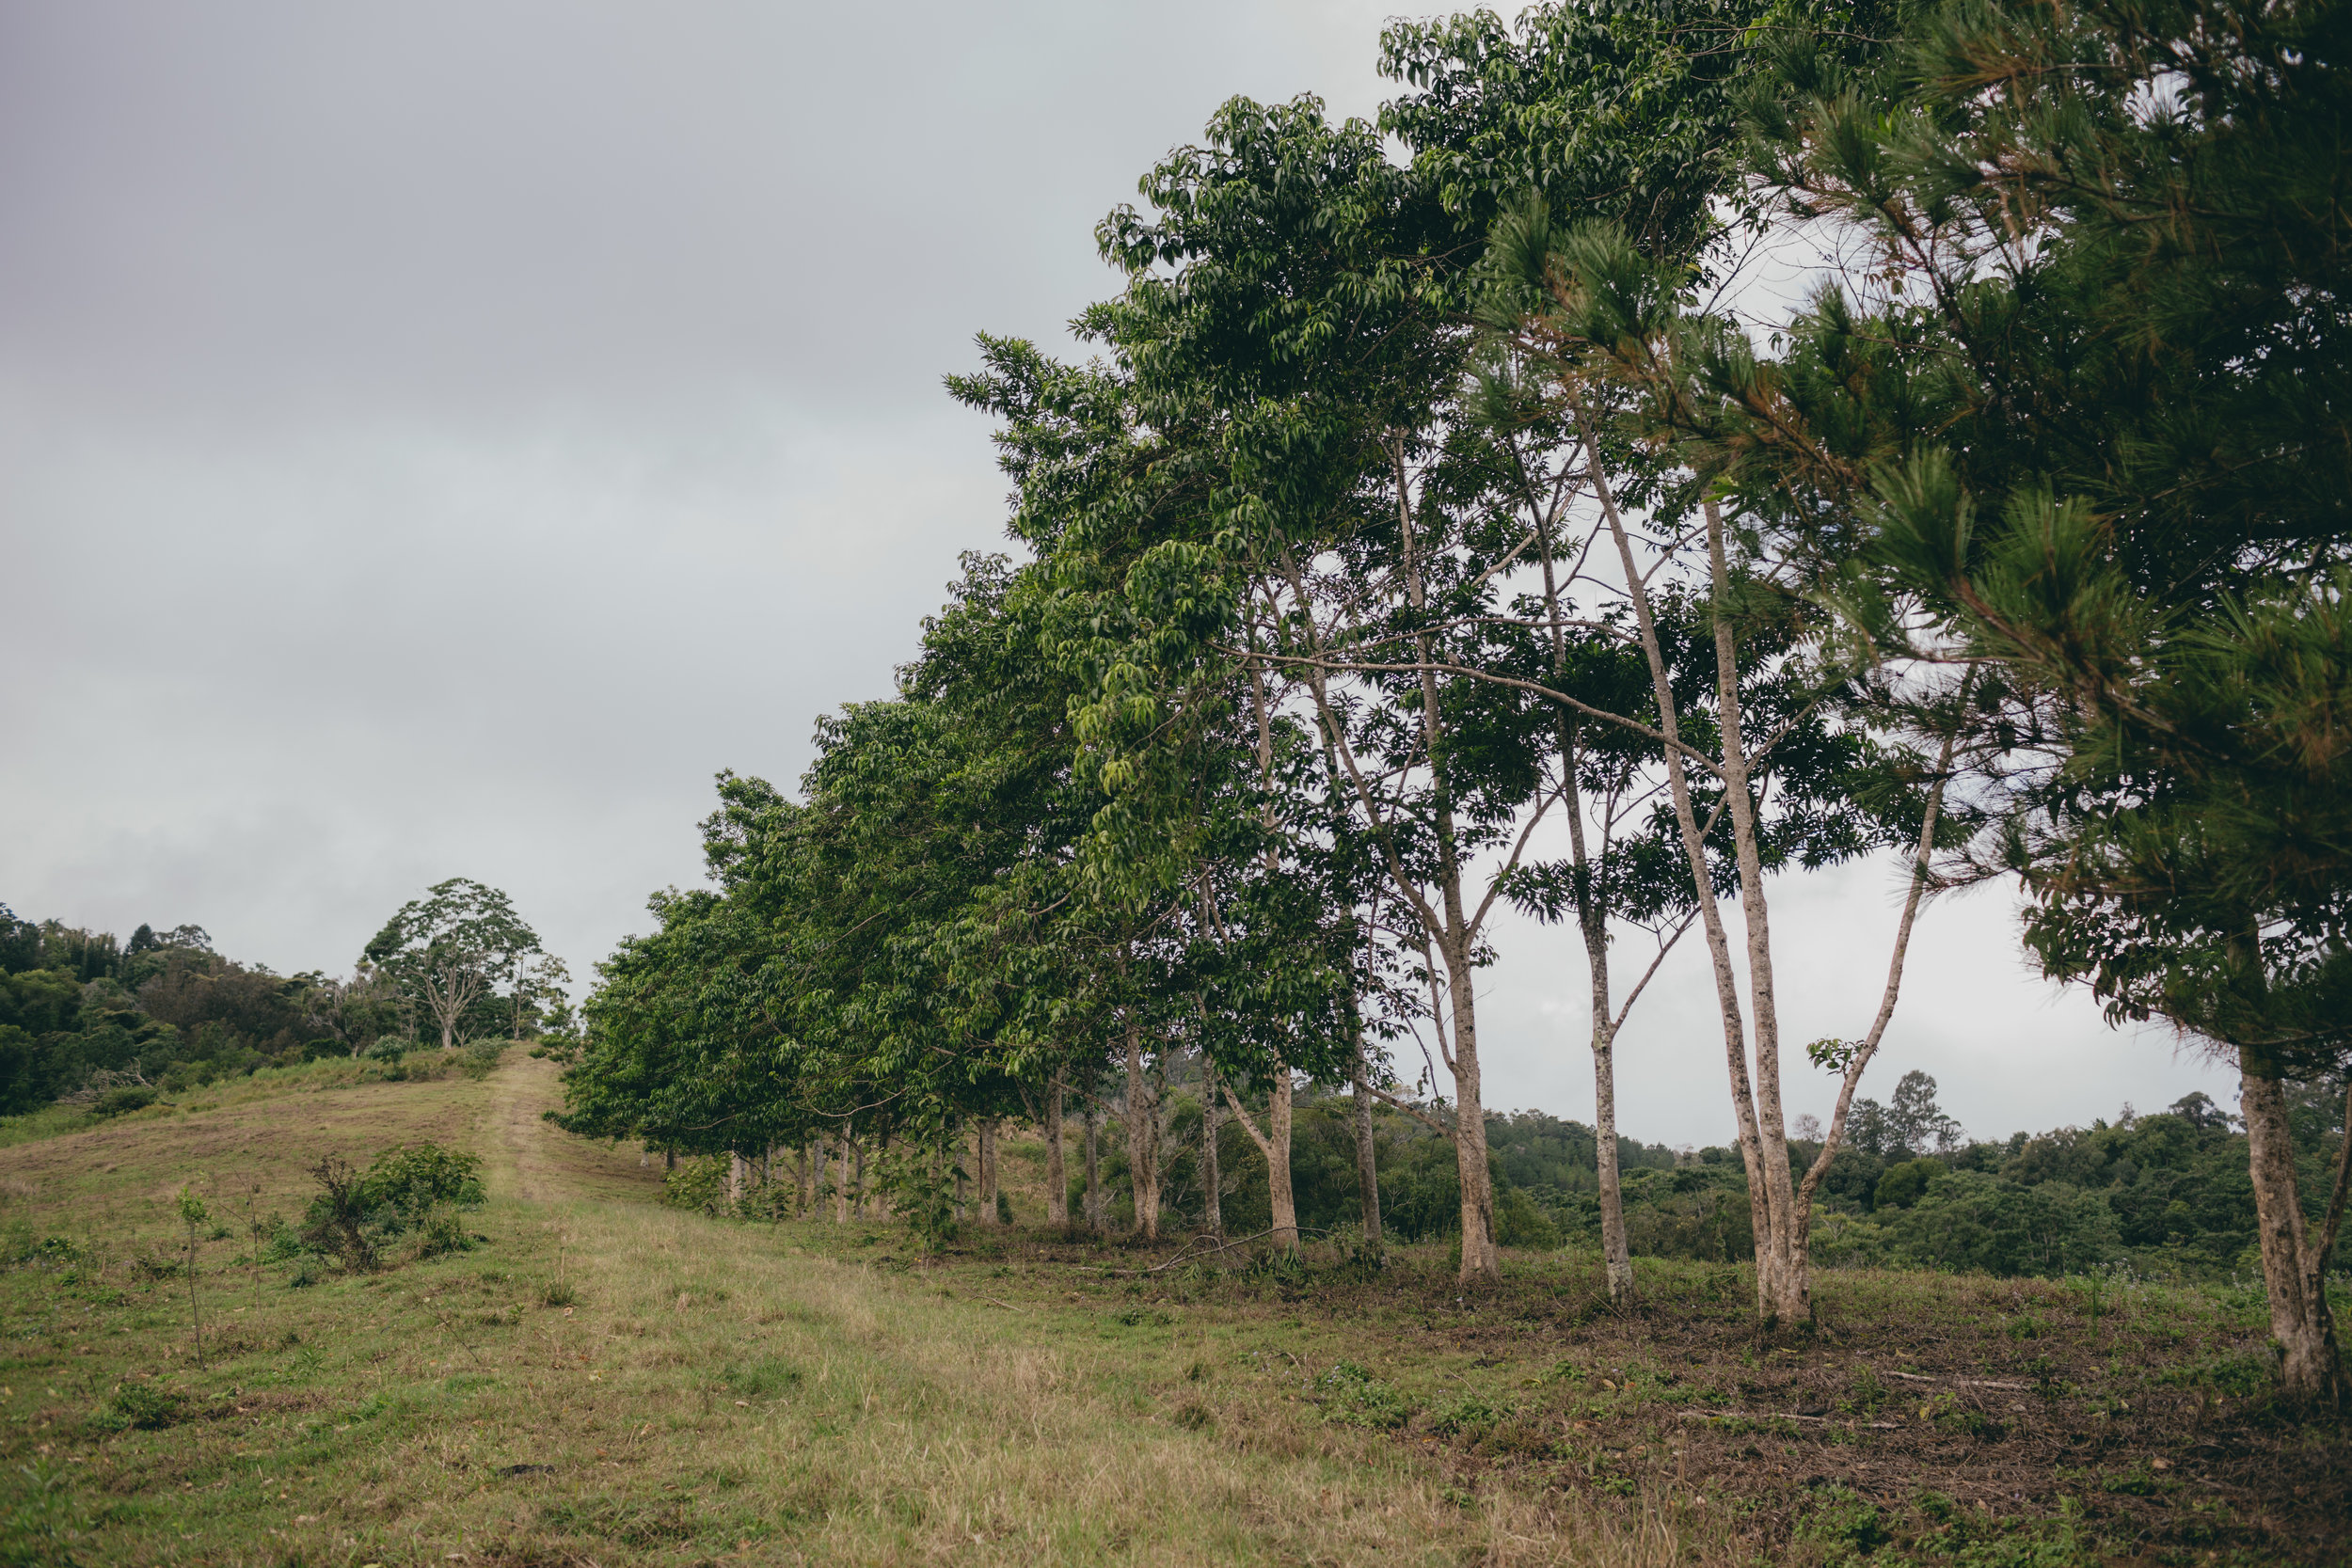 Tree line of the property.